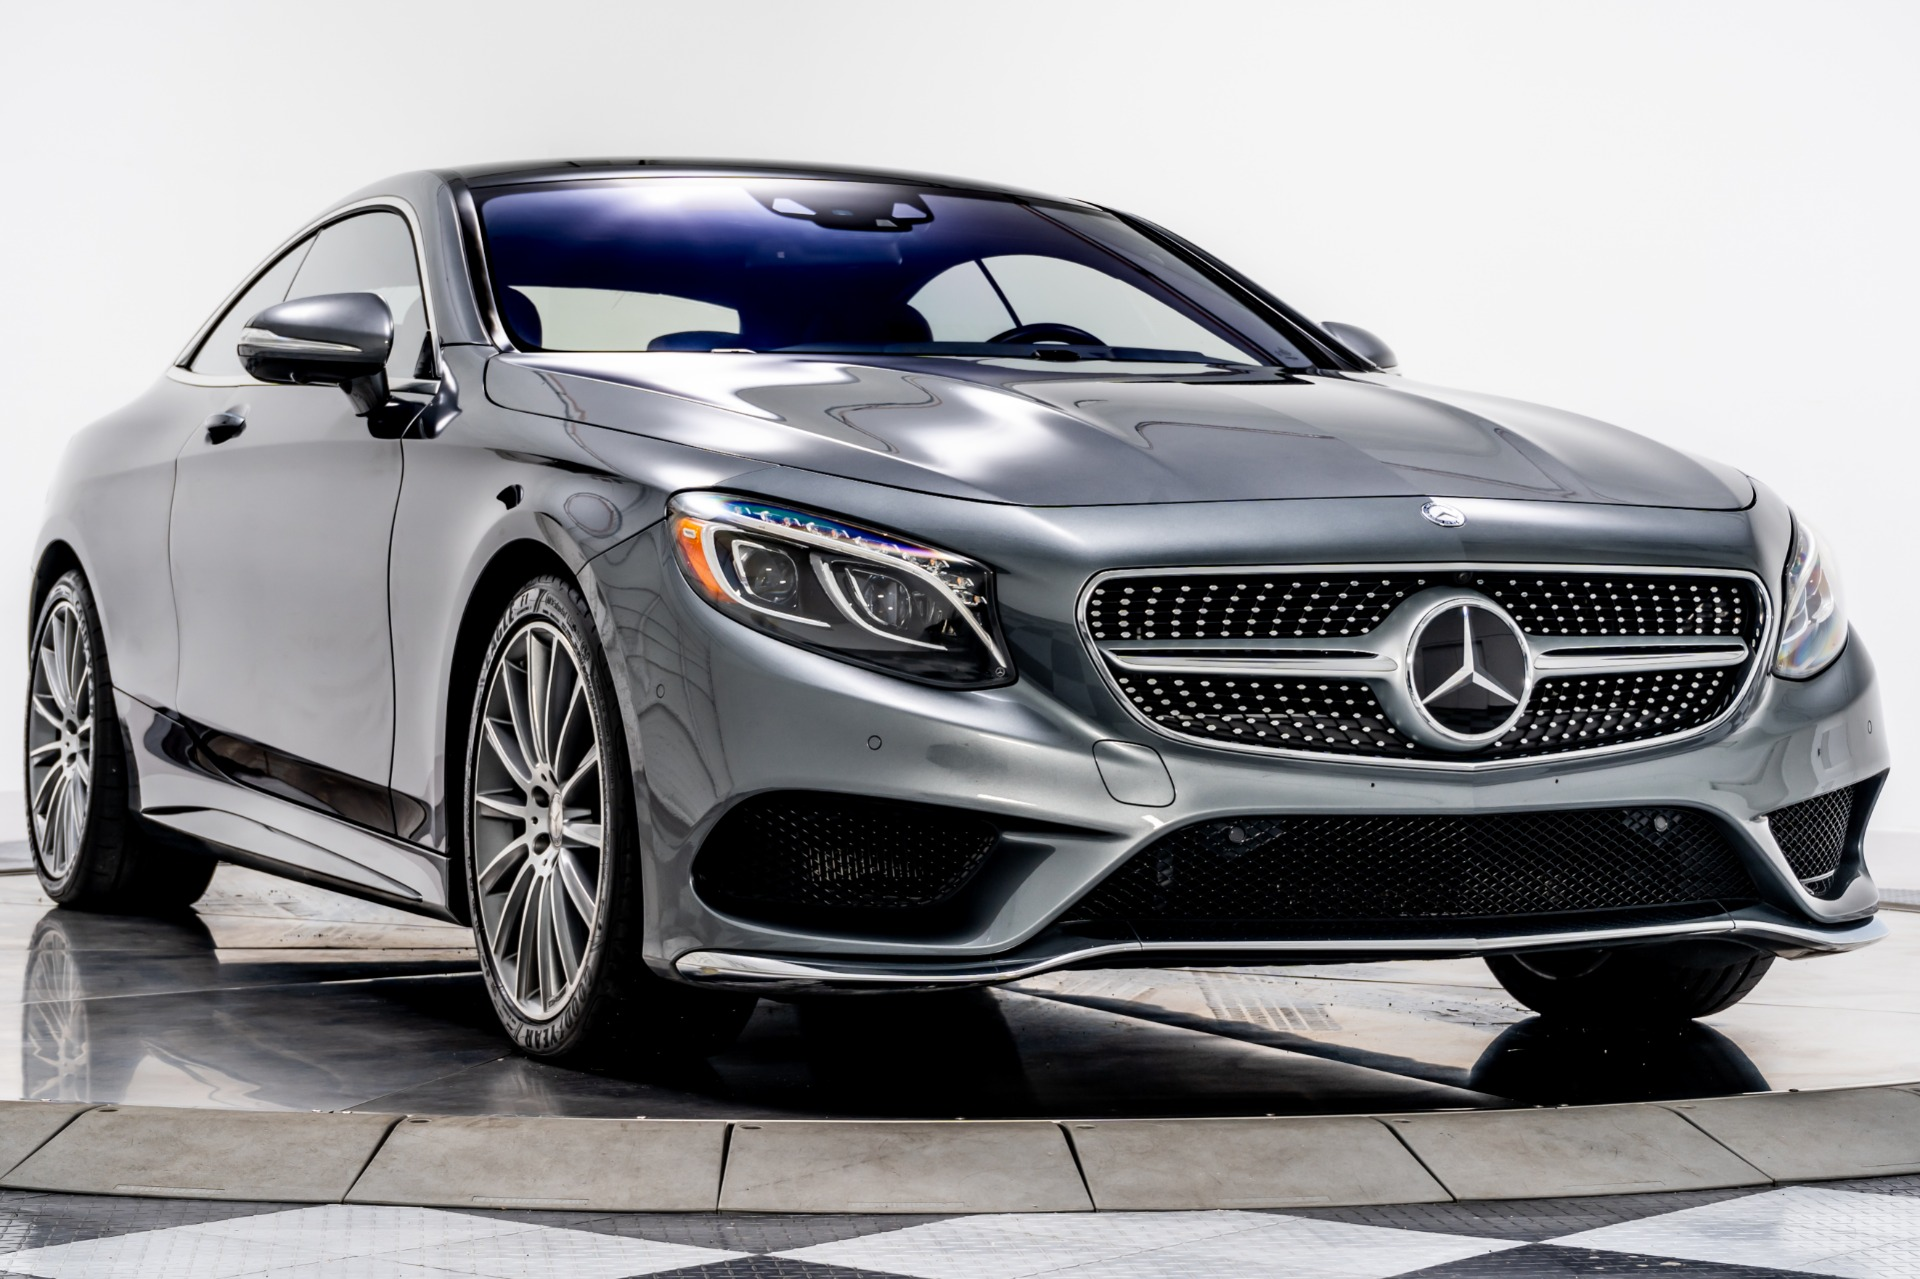 Used 2016 Mercedes Benz S550 Coupe For Sale 69 900 Marshall Goldman Cleveland Stock 21482